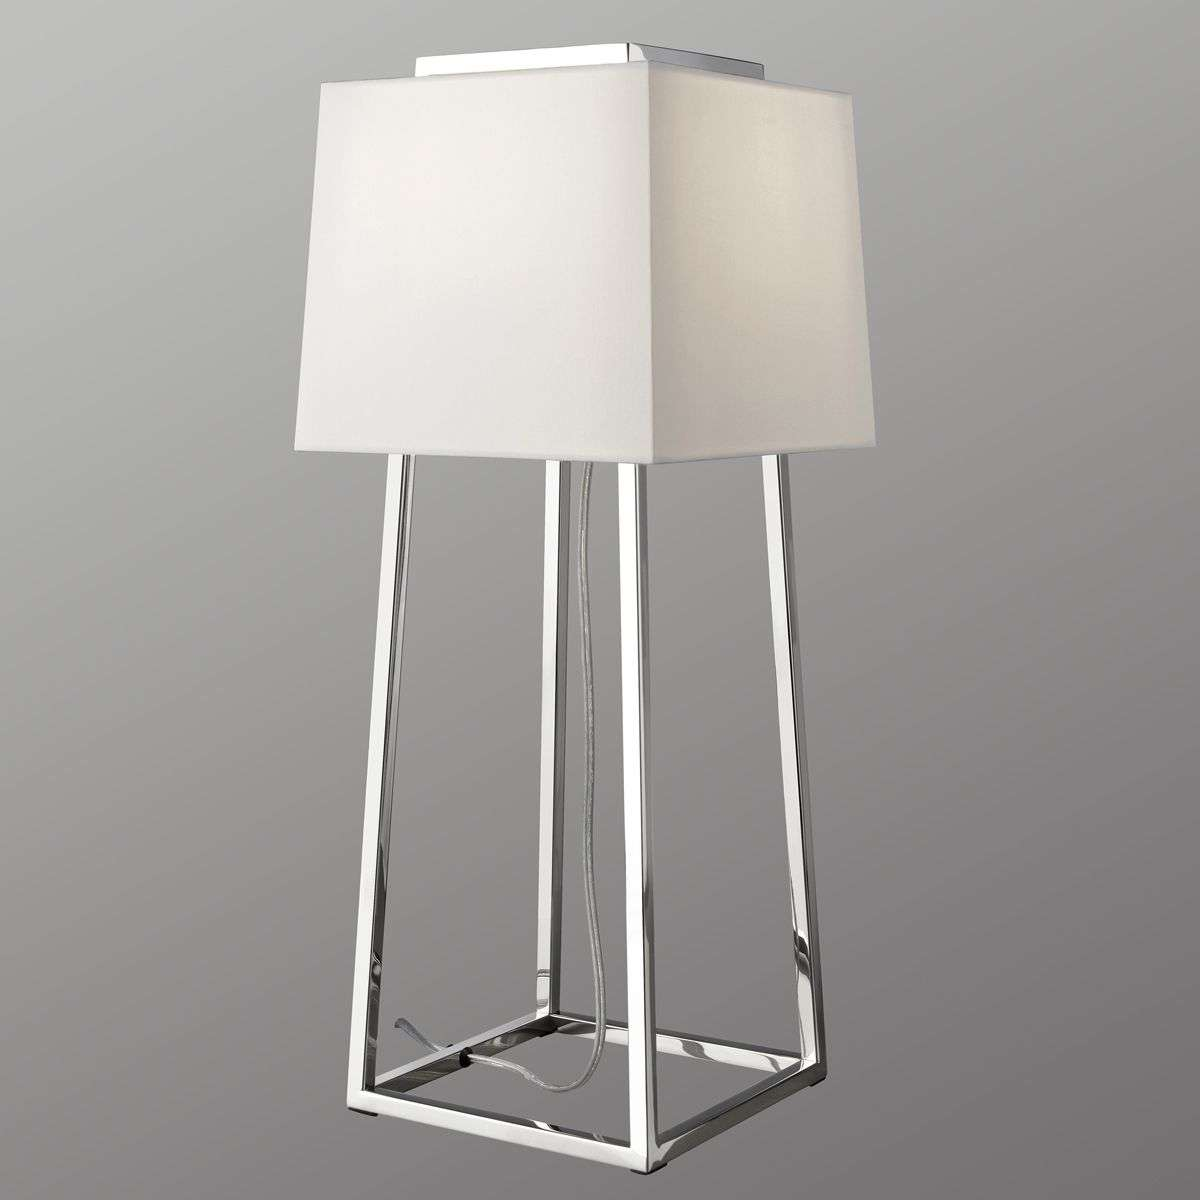 Stylish table lamp copenhagen angular lights stylish table lamp copenhagen angular 8507587 31 mozeypictures Choice Image